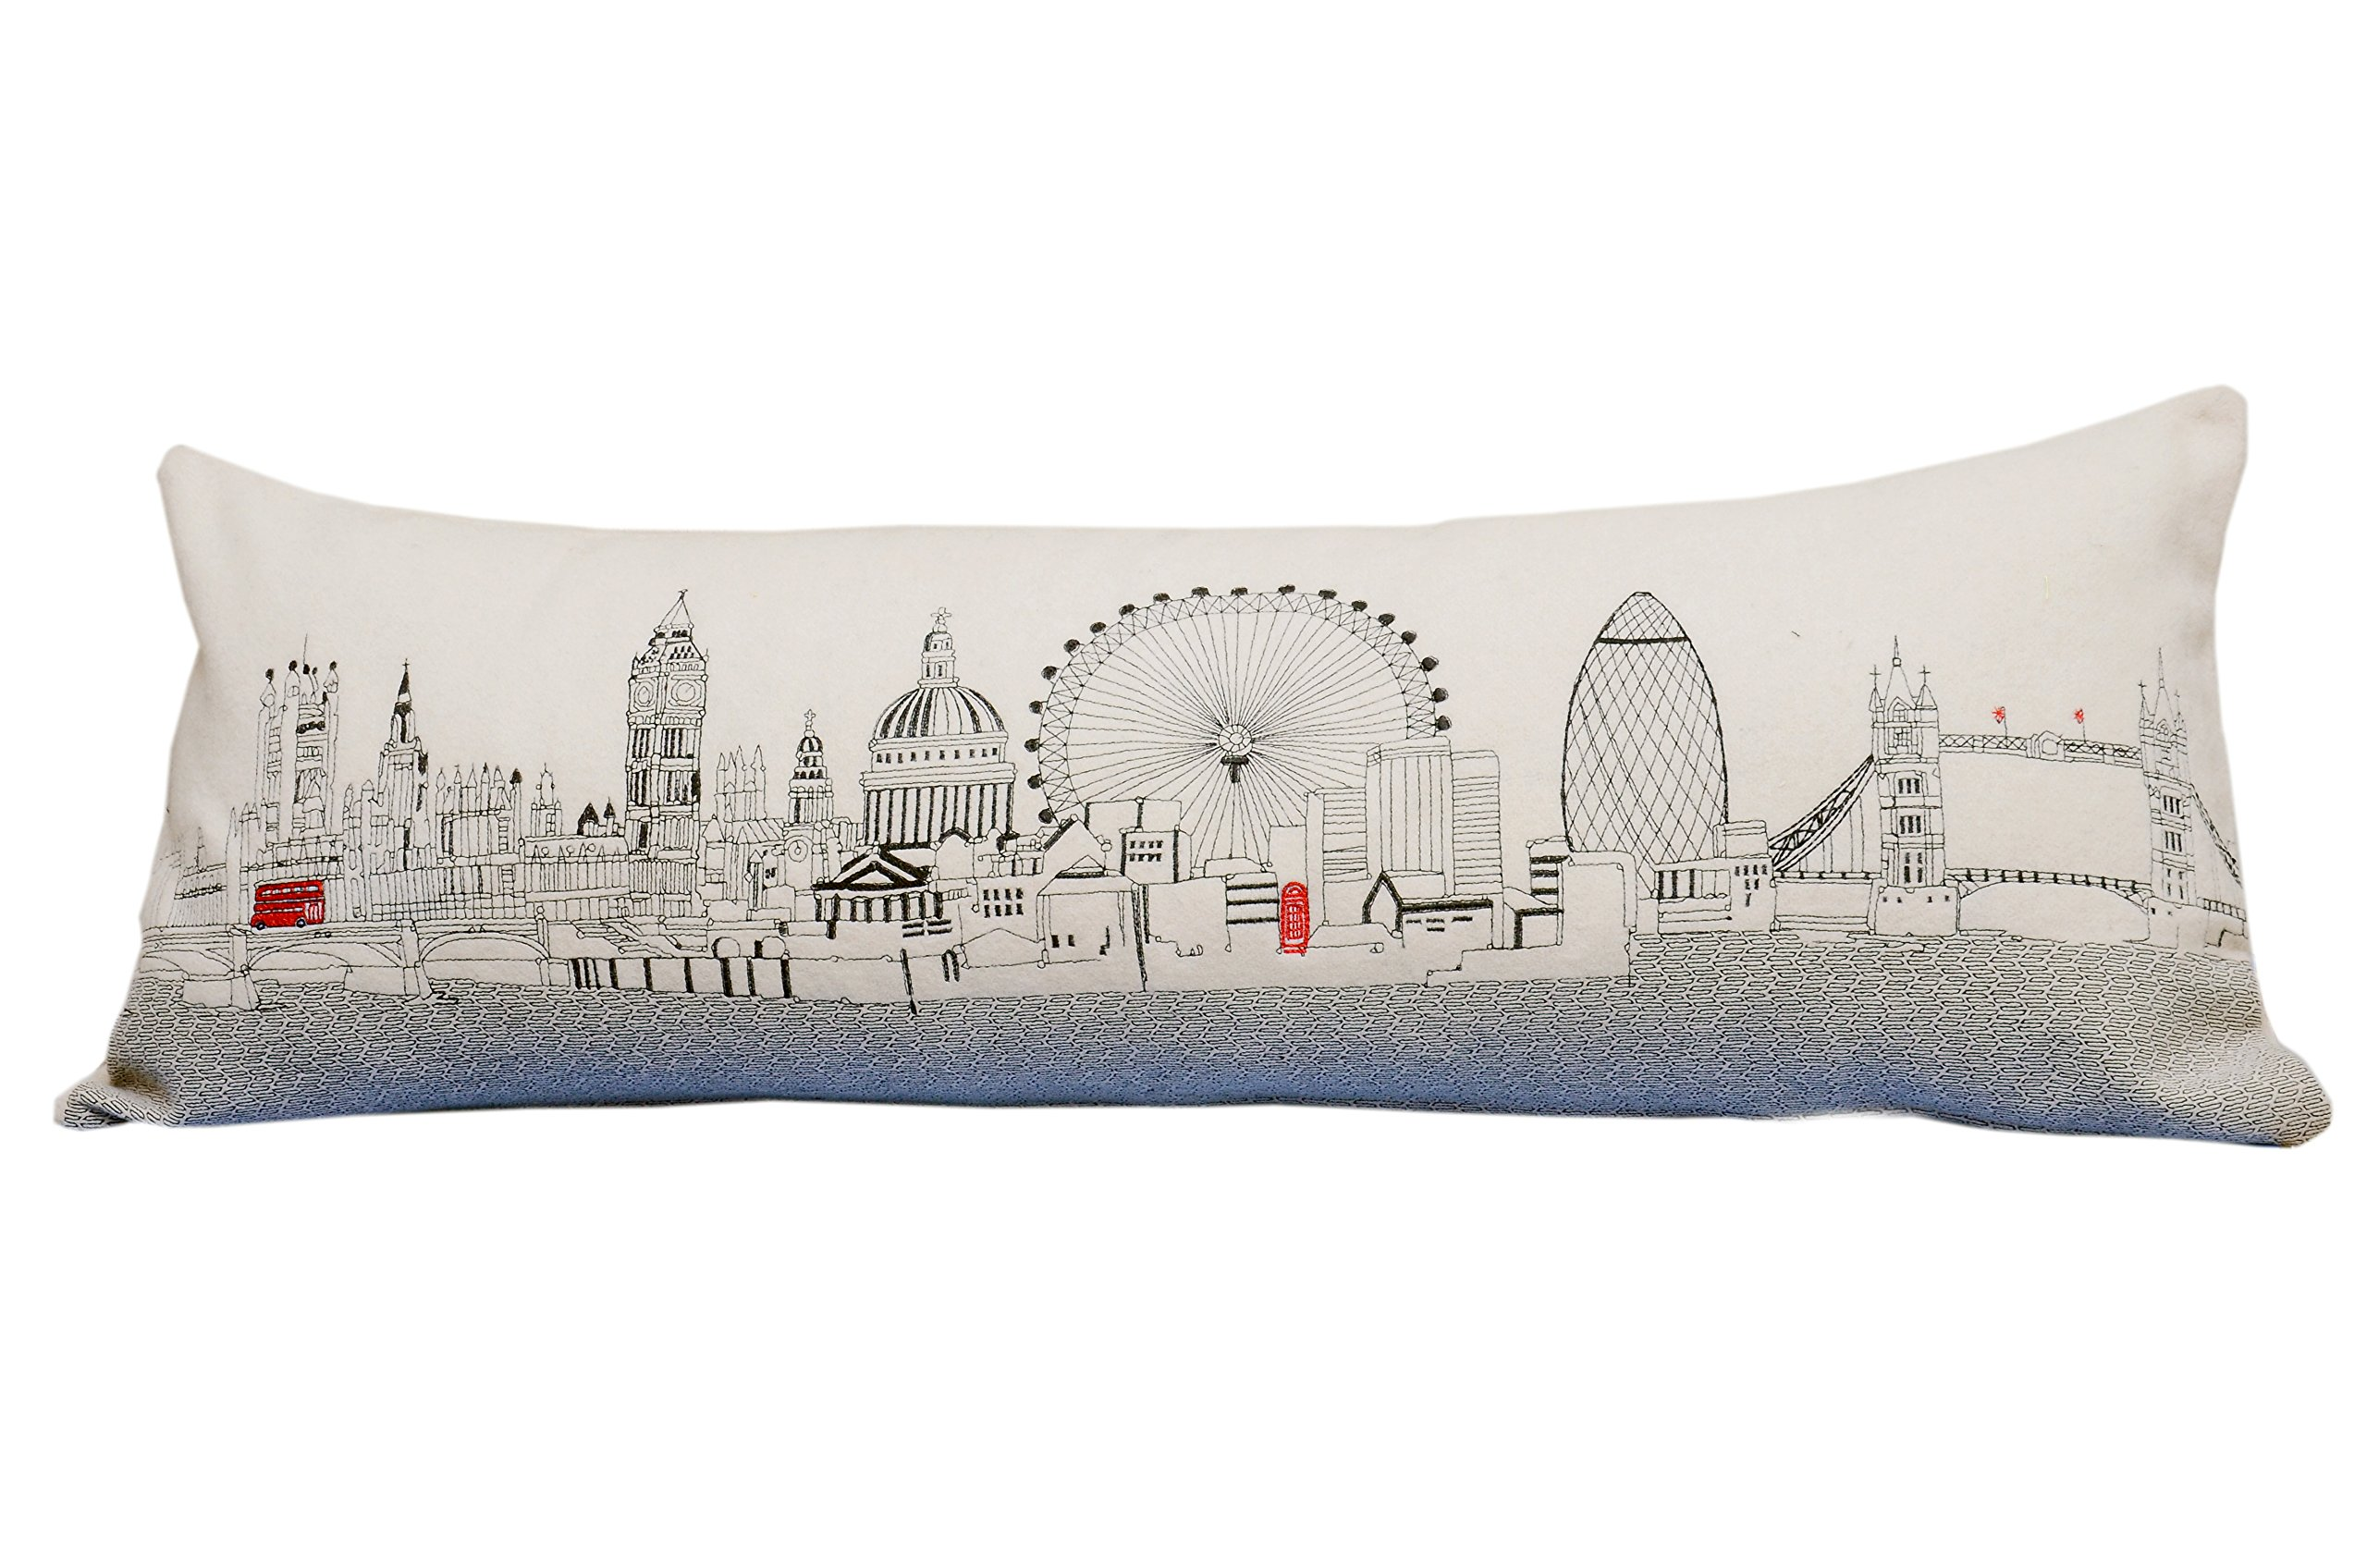 BEYOND CUSHIONS Polyester Throw Pillows London England Daytime Skyline Queen Size Embroidered Pillow 35 X 14 X 5 Inches Off-White